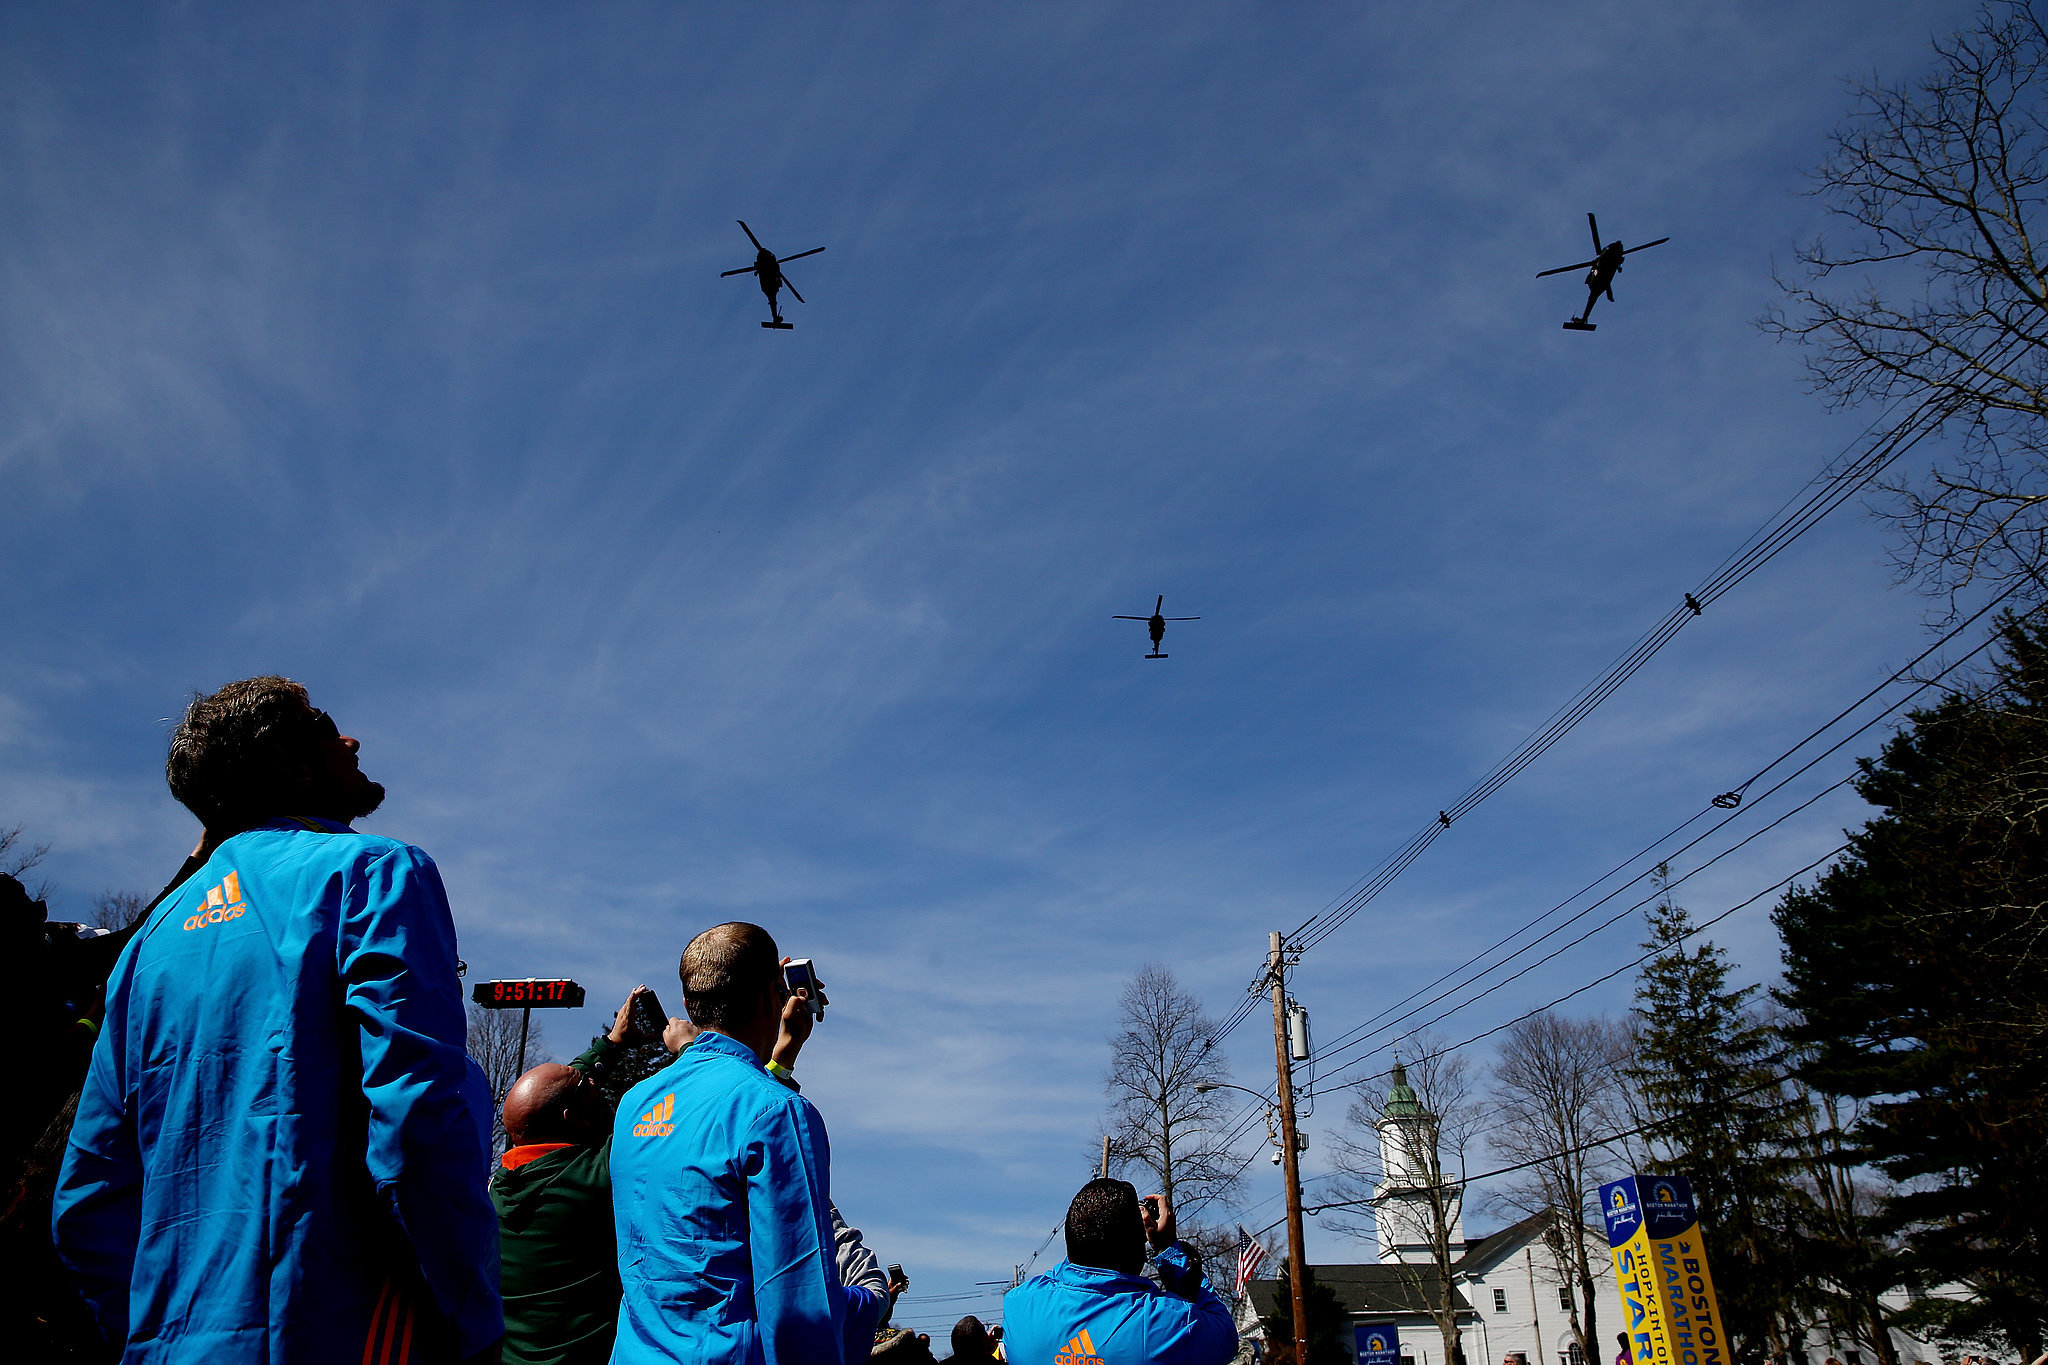 Planes flew overhead to mark the start of the marathon.